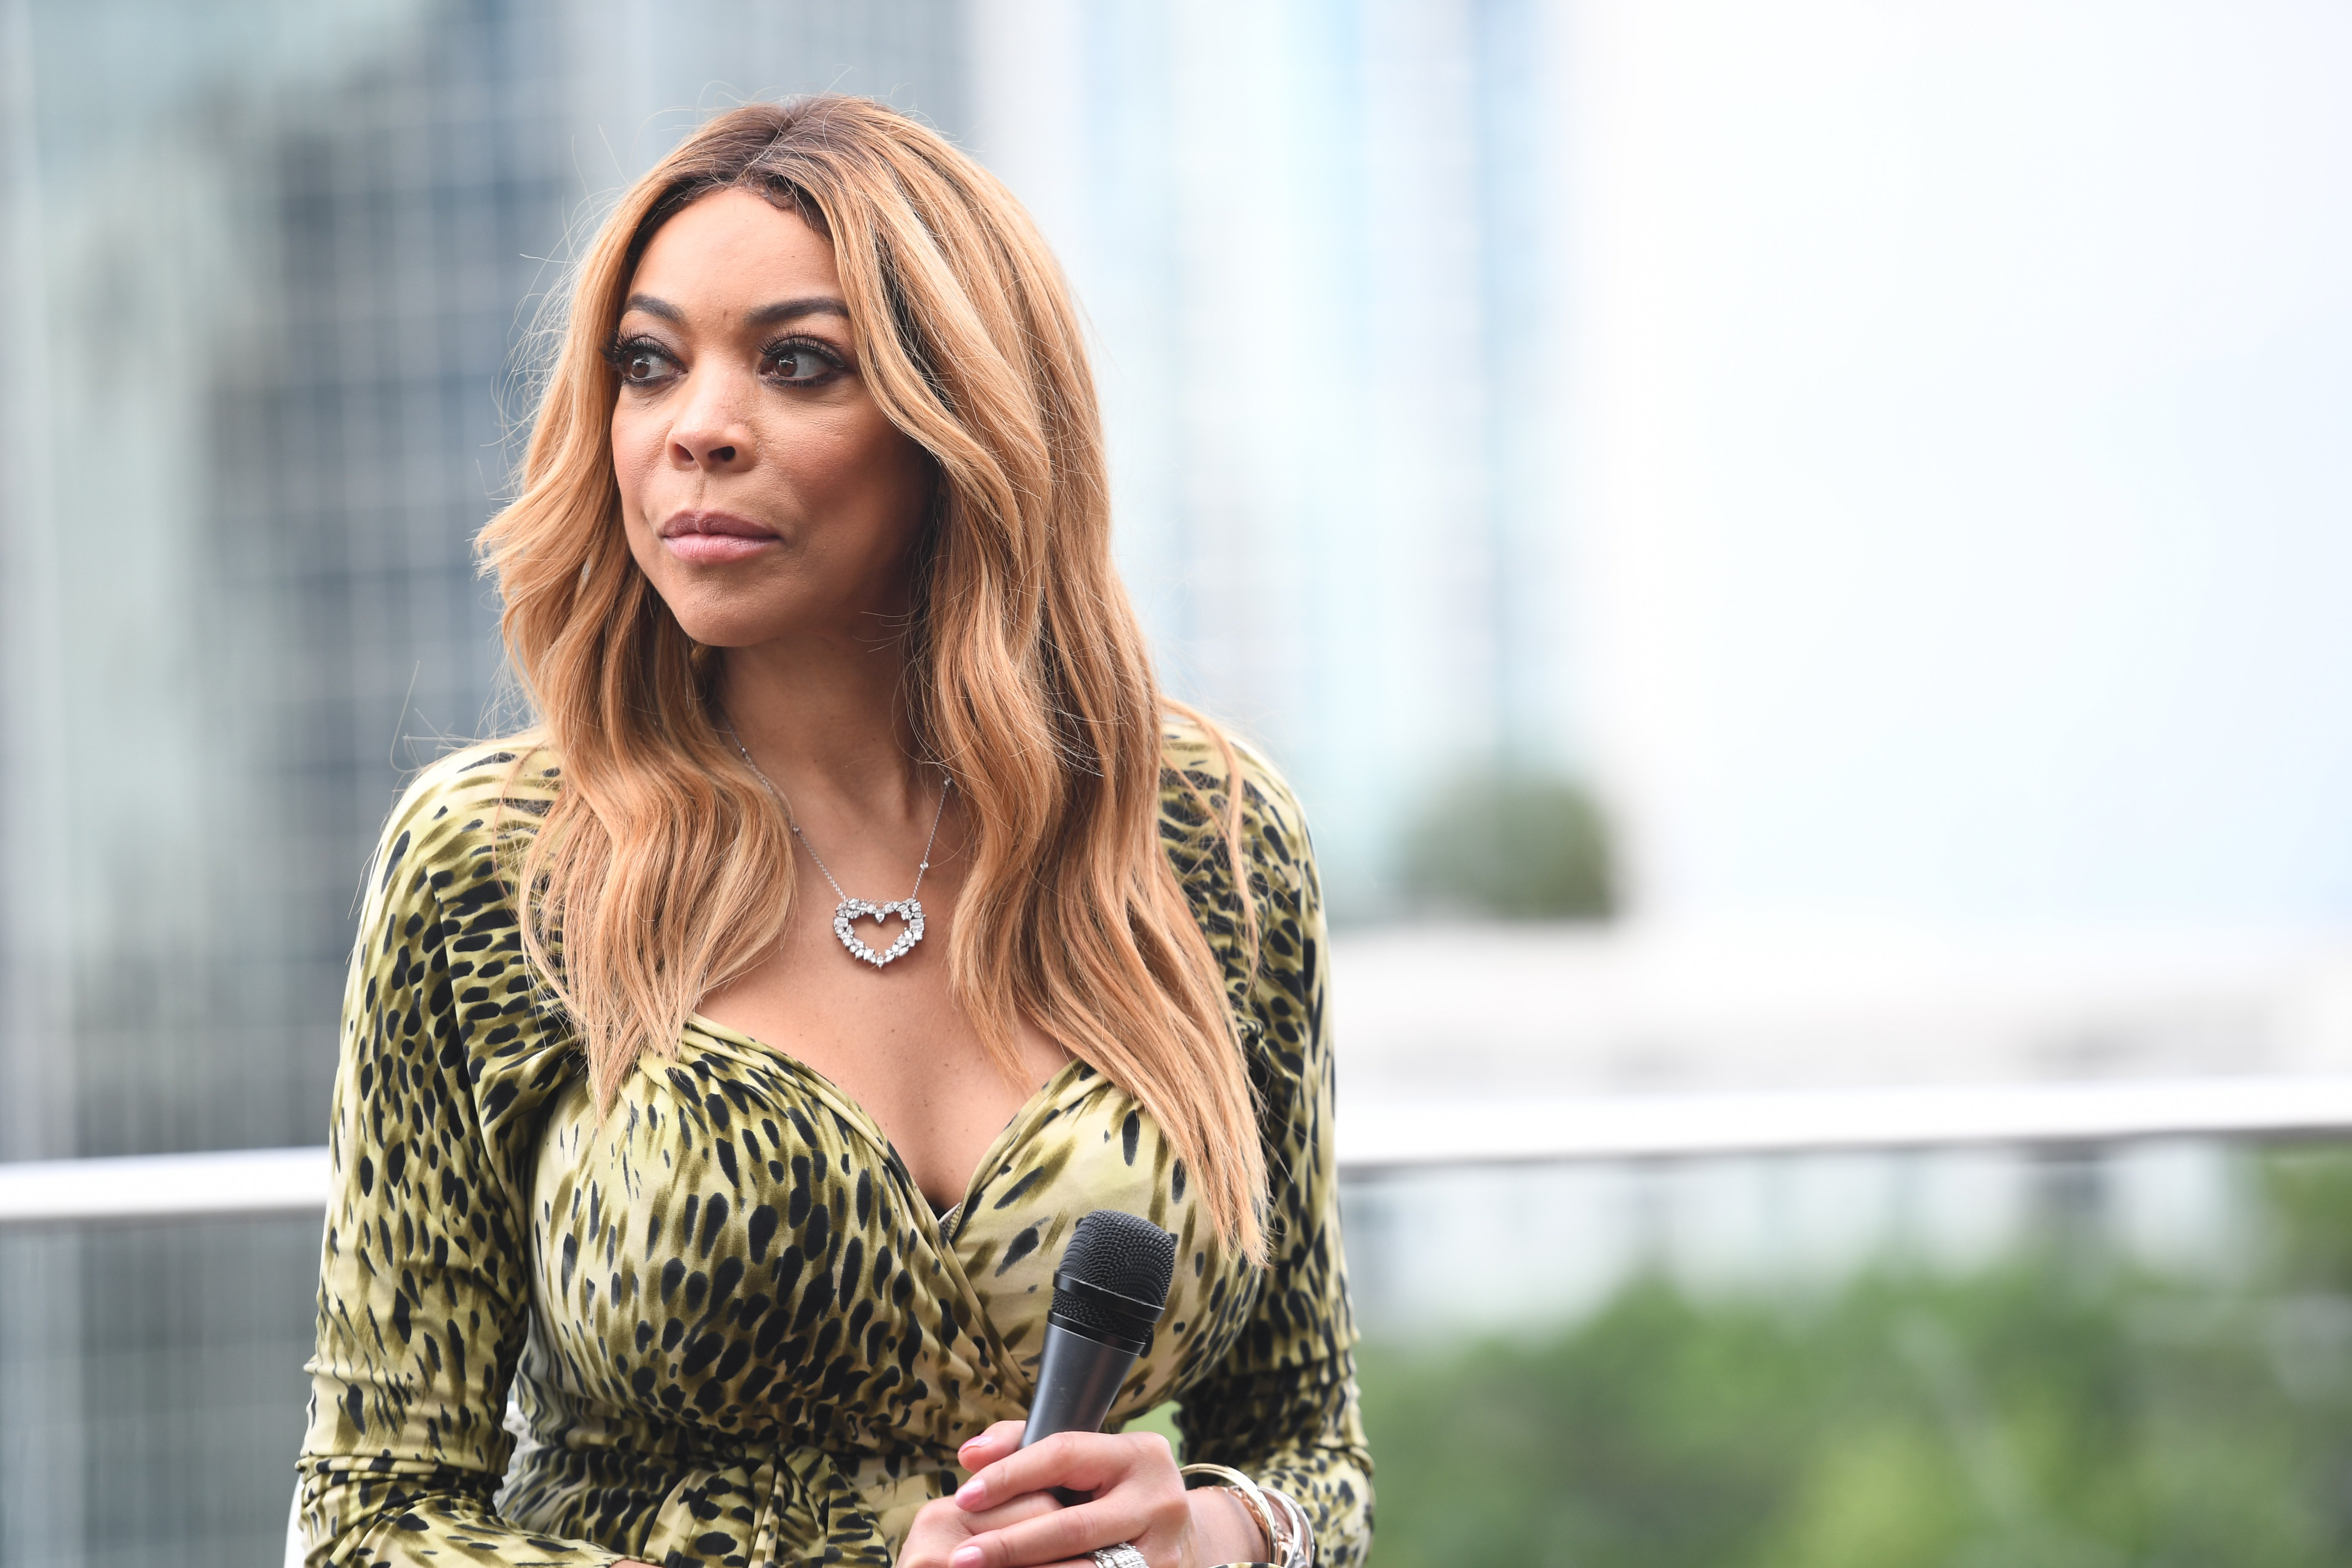 Wendy Williams attends Wendy Digital Event at Atlanta Tech Village Rooftop on Aug. 29, 2017. | Photo: Getty Images